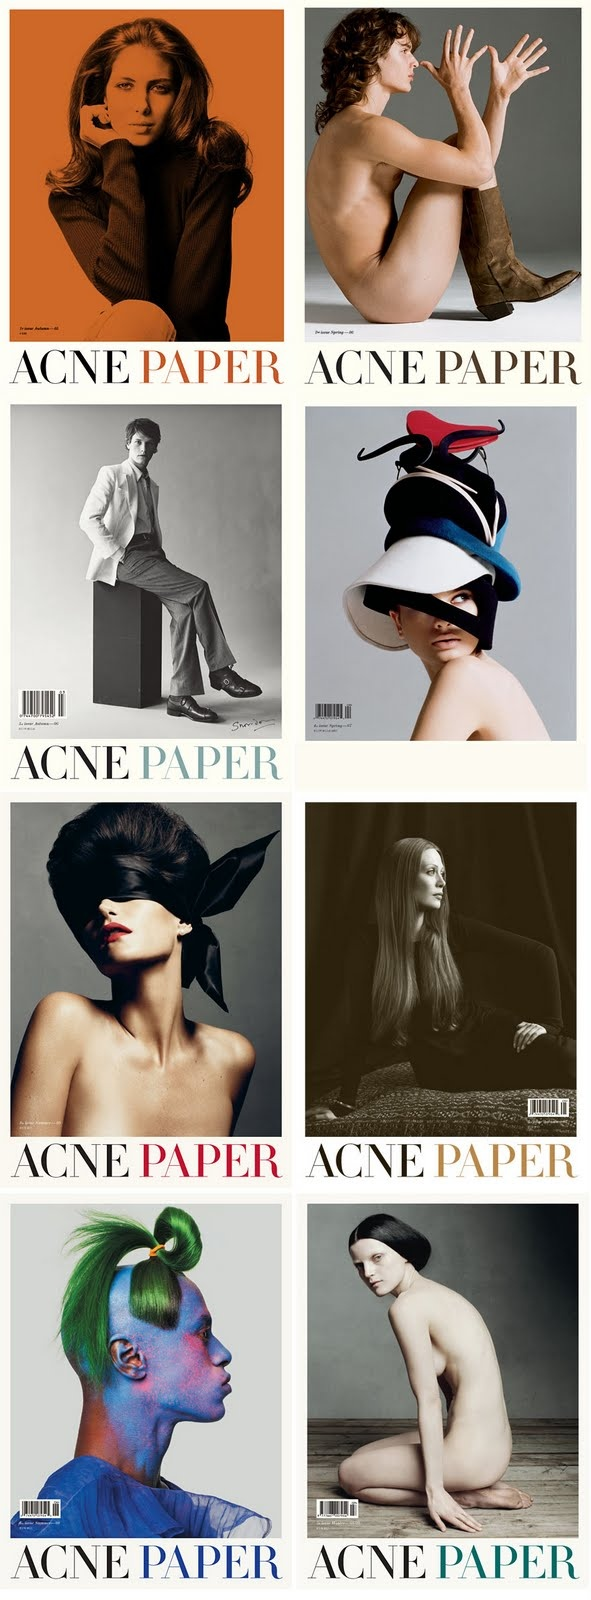 acne paper covers